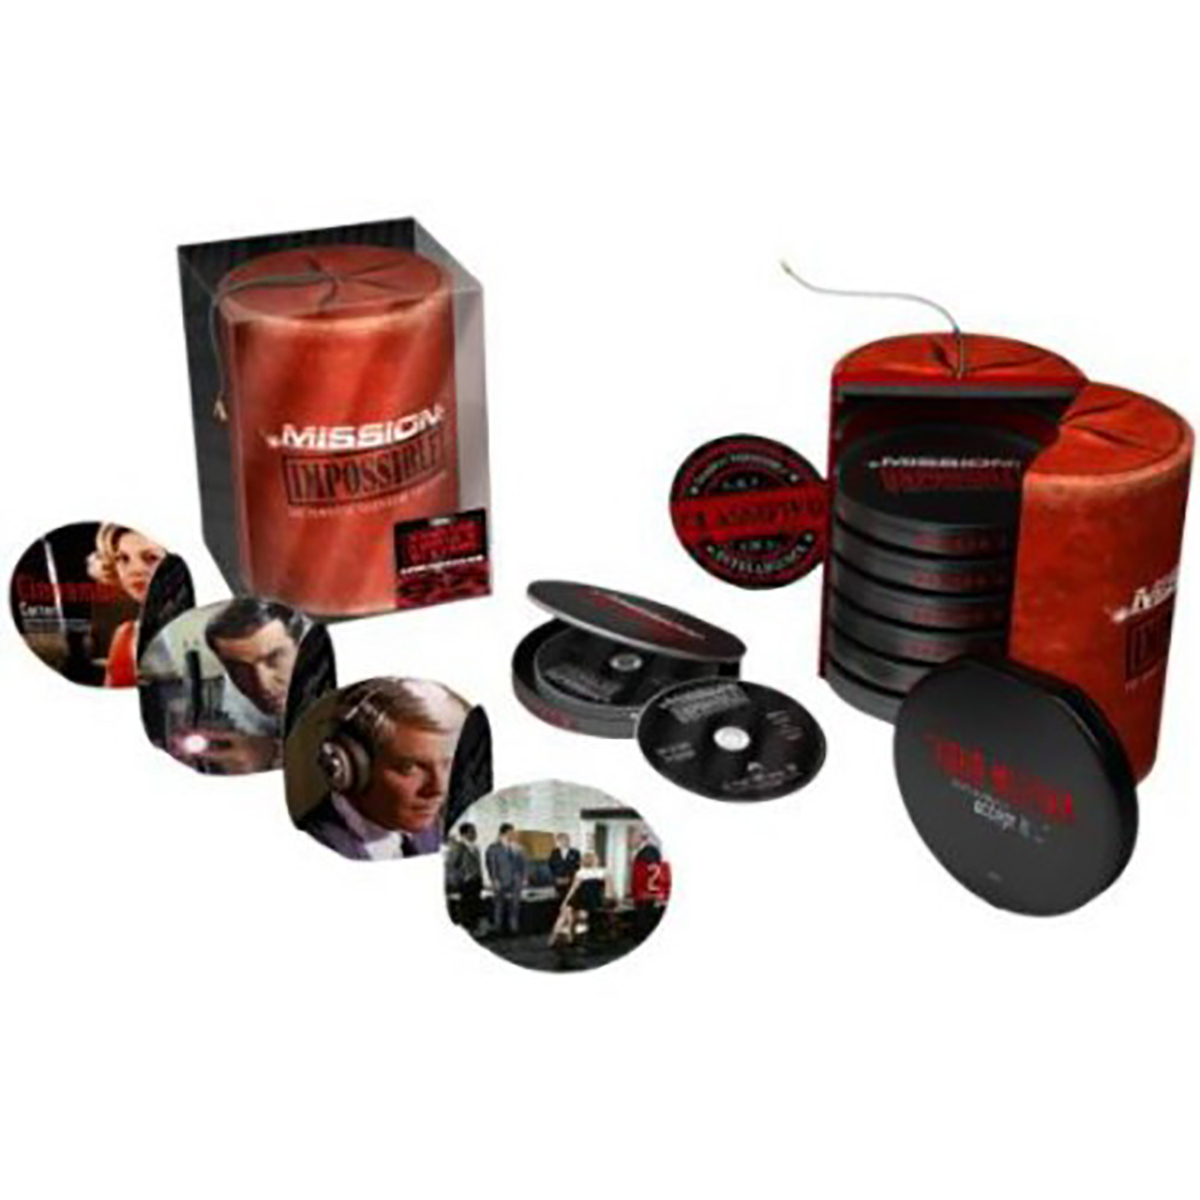 Mission: Impossible - The Complete Television Collection DVD Gift Set -  DVDs & Videos 6445-433093